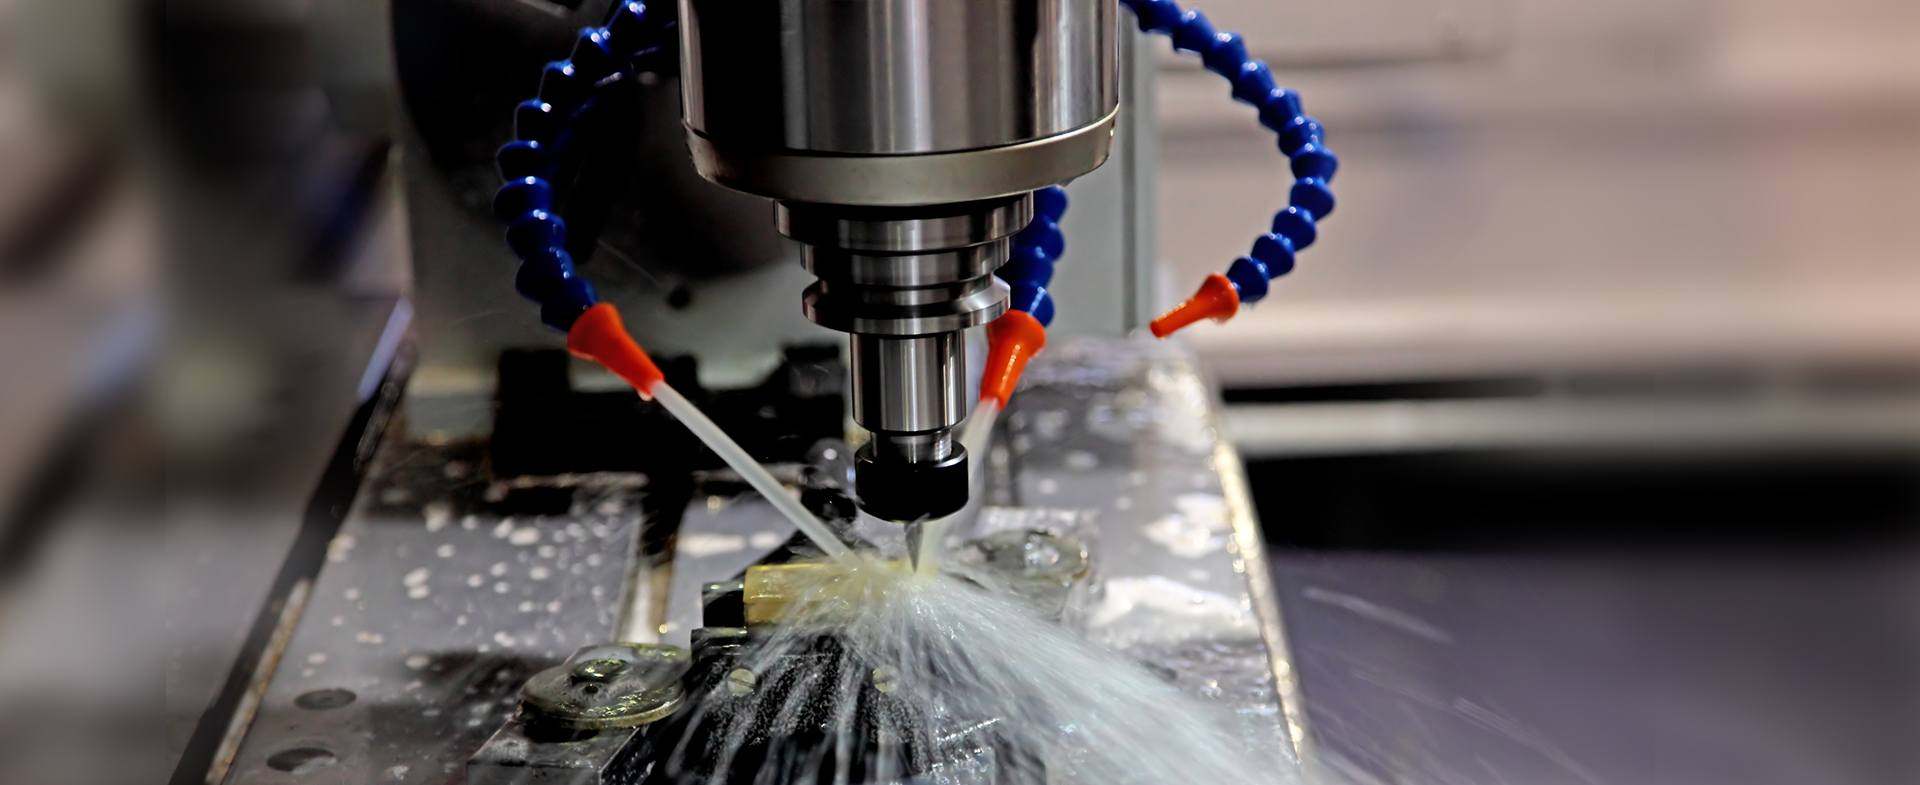 Machining & Grinding Fluids For Metal Working Industry